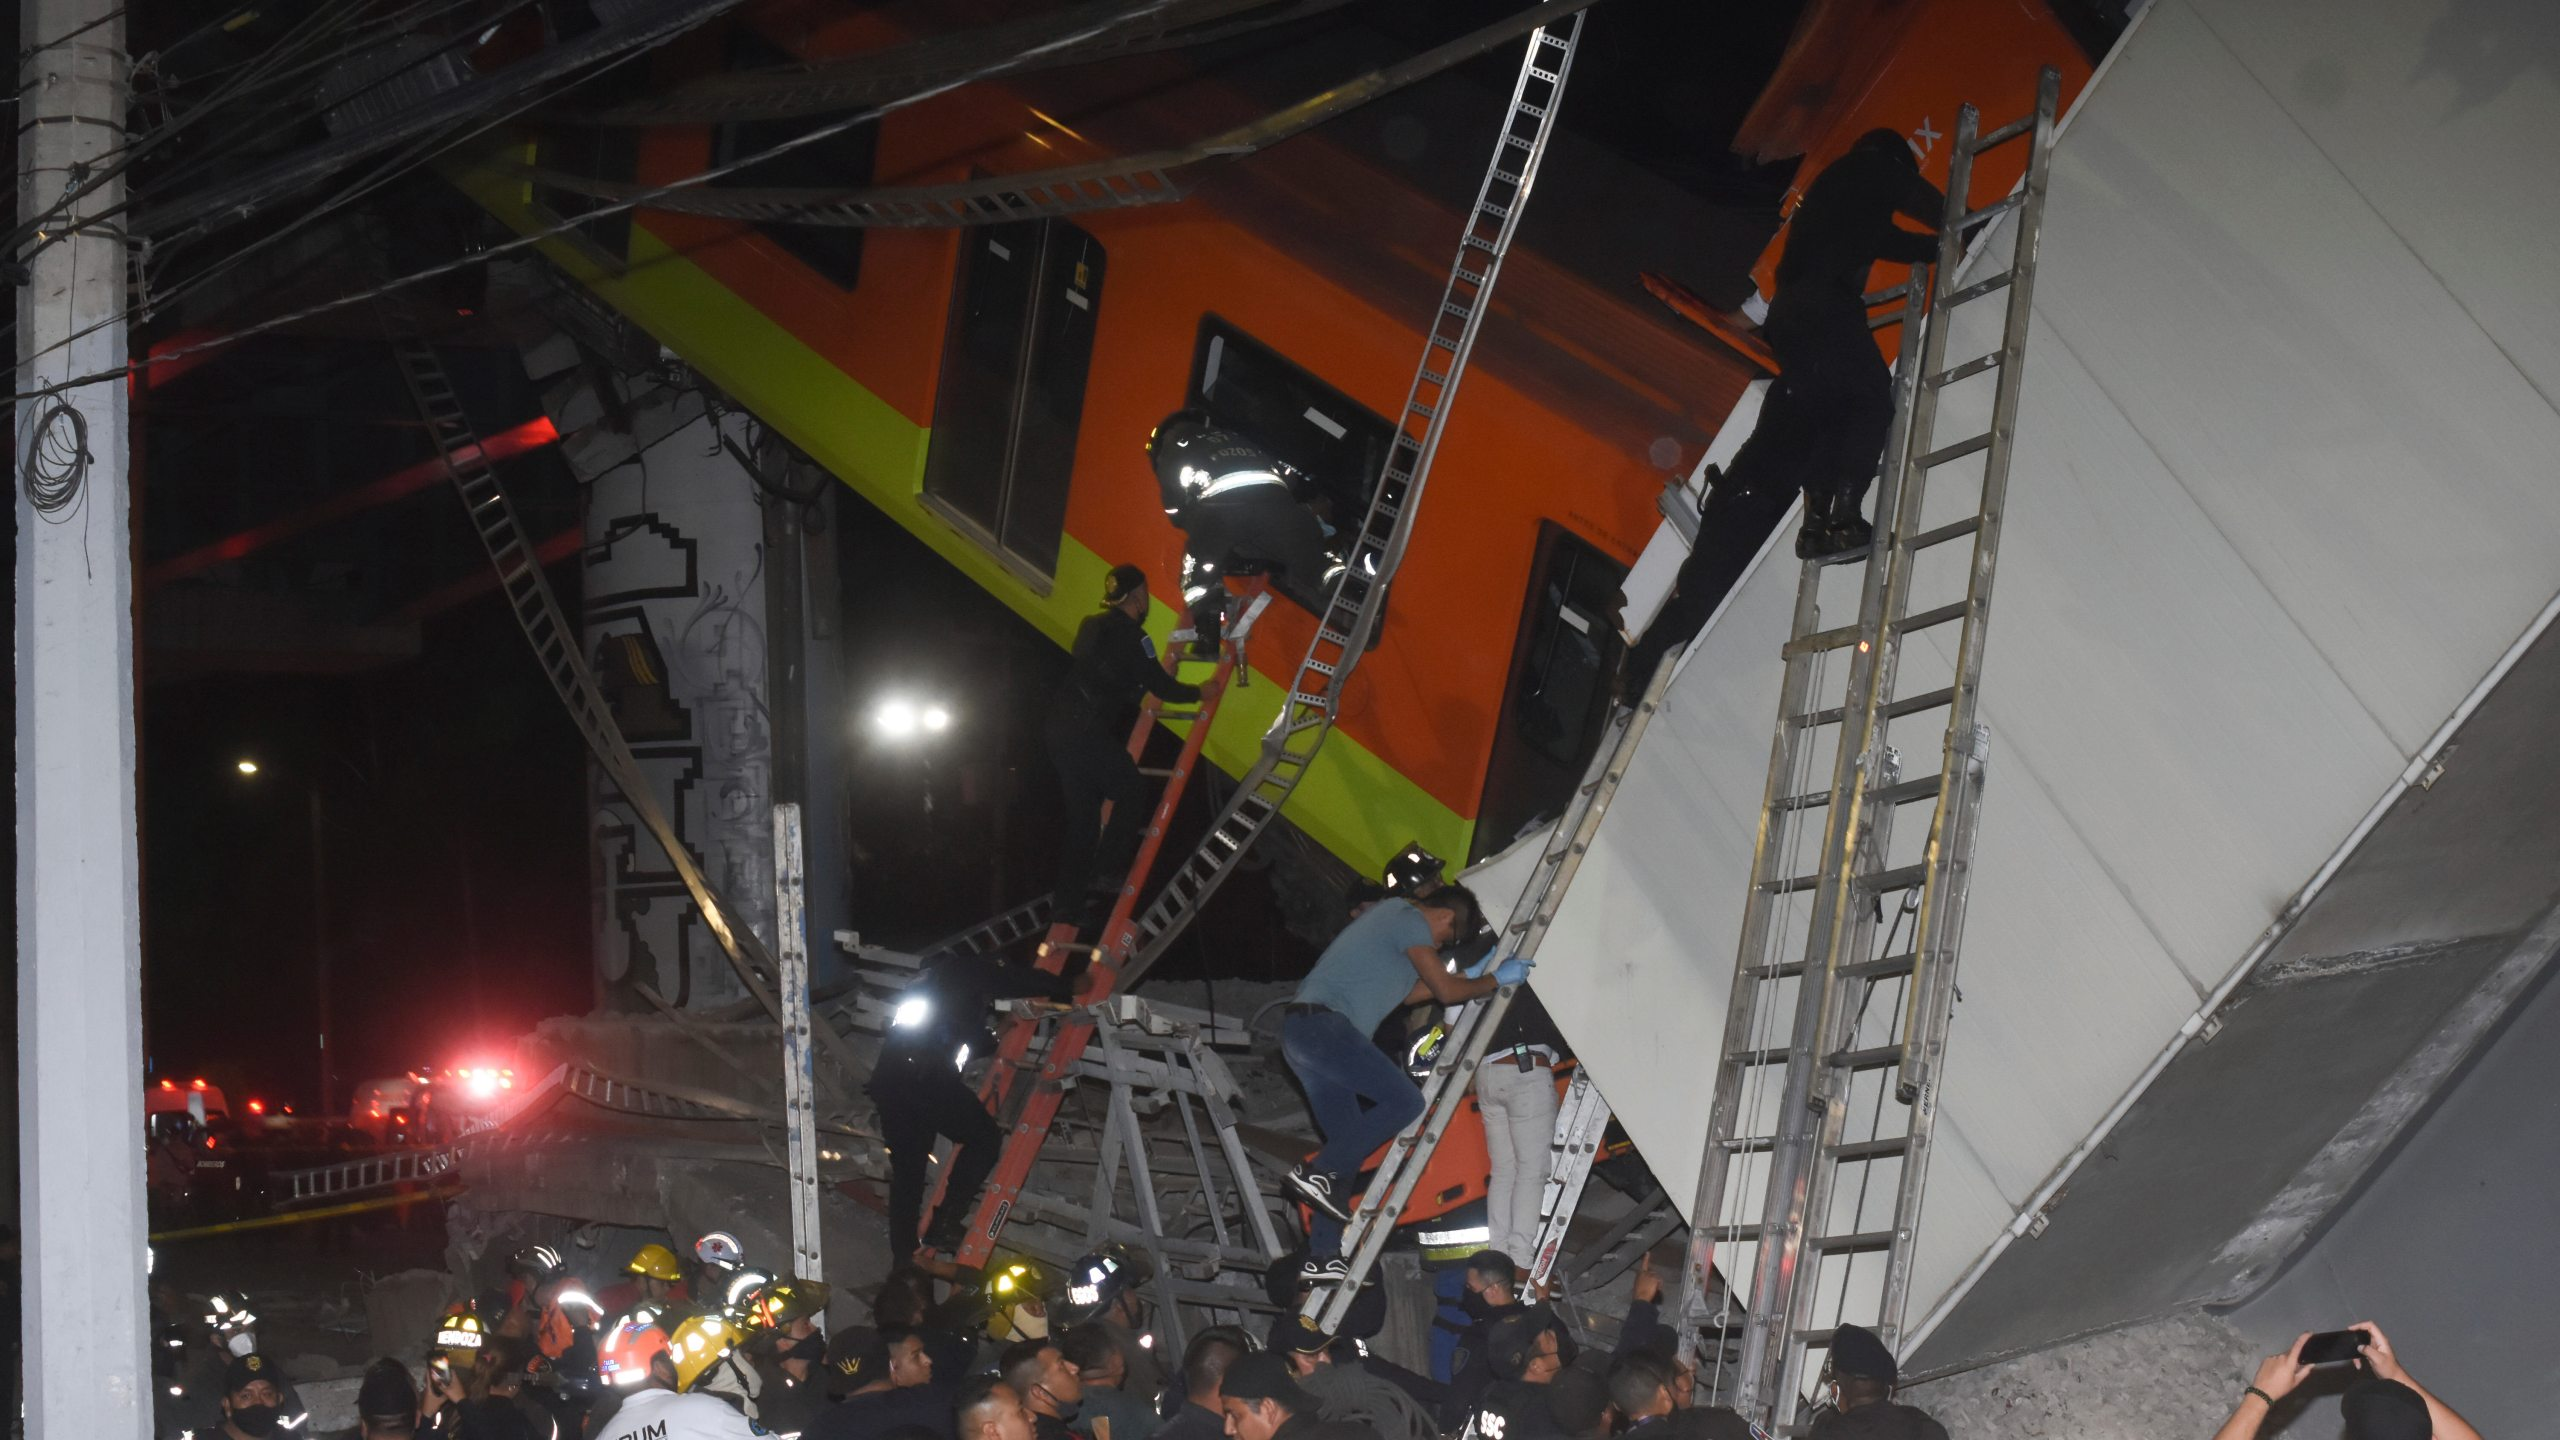 Mexico City firefighters and rescue personnel work to recover victims from a subway car that fell after a section of Line 12 of the subway collapsed in Mexico City on May 3, 2021. (Jose Ruiz/Associated Press)